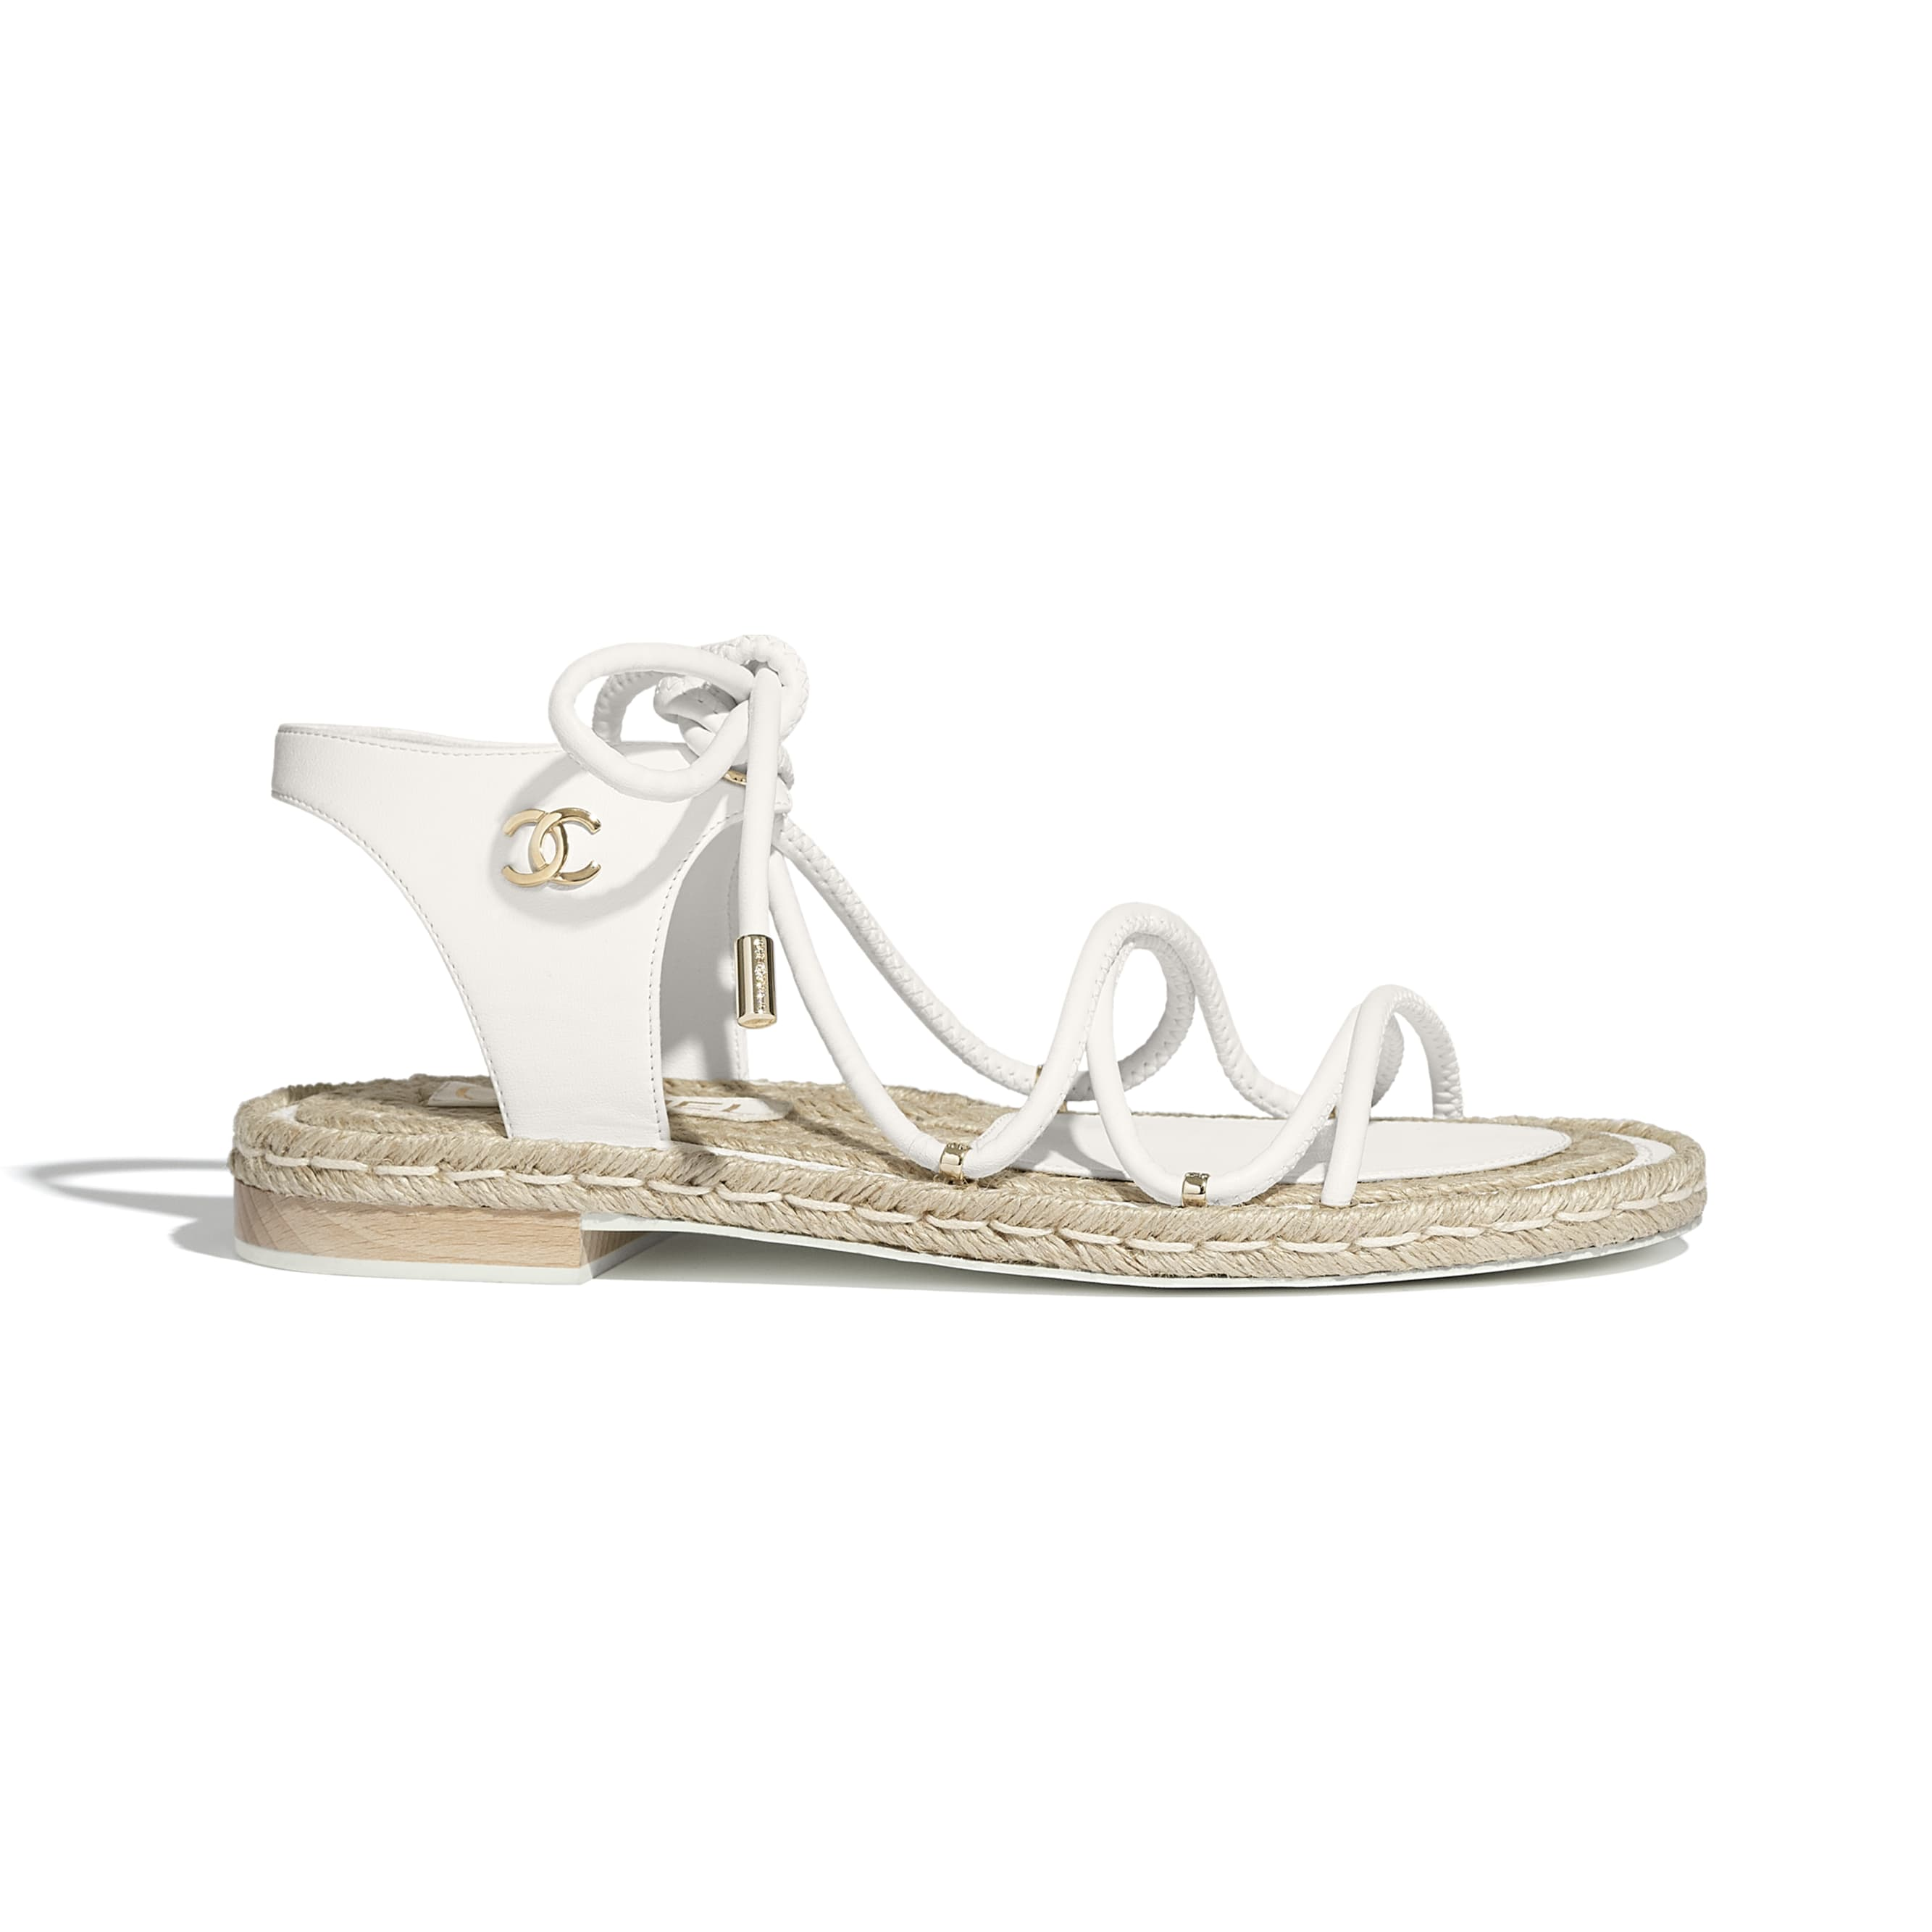 Sandals - White - Lambskin - CHANEL - Default view - see standard sized version